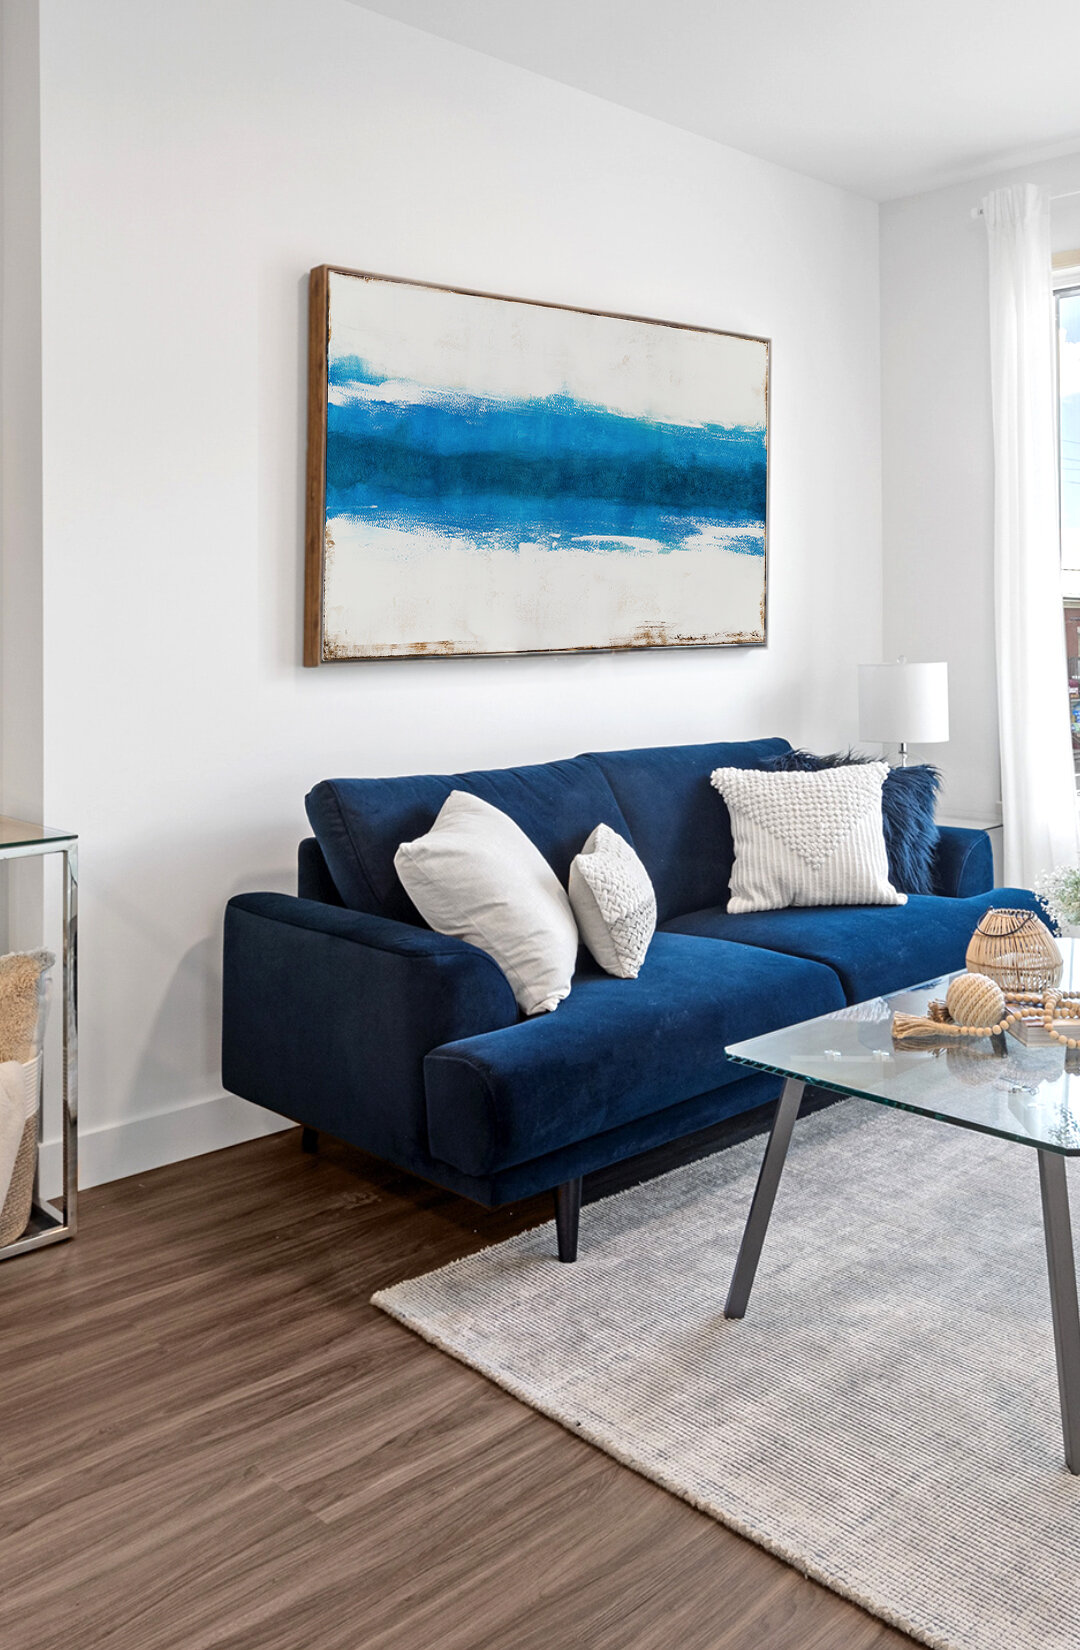 White and blue abstract painting for wall decor and interior design